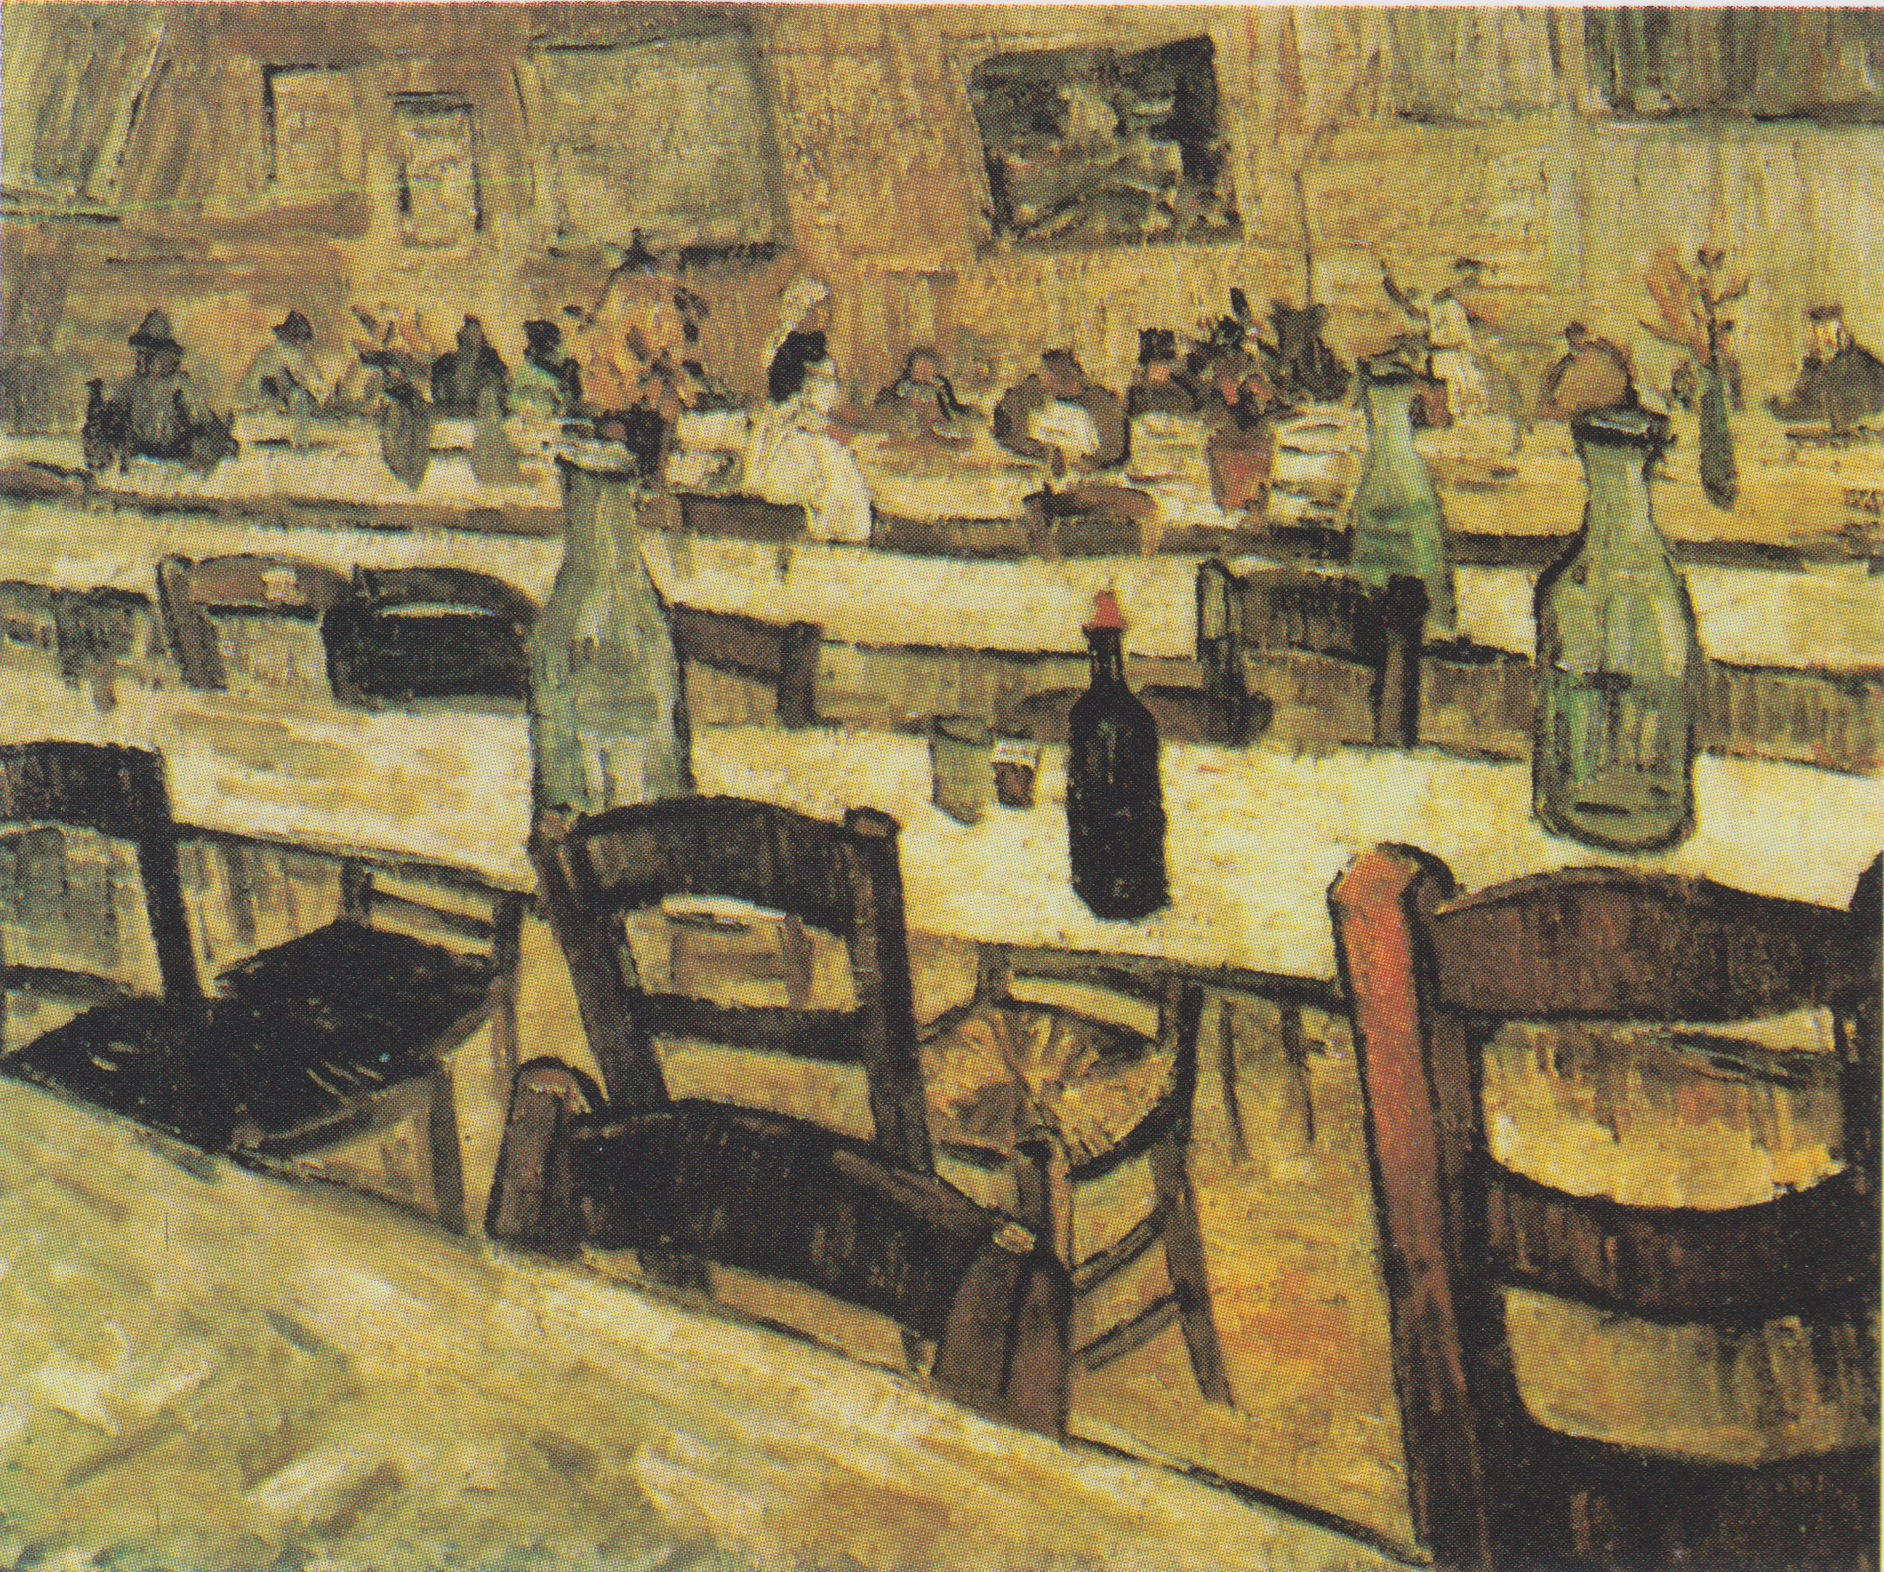 Interieur Zundert File:van Gogh - Interieur Eines Restaurants In Arles.jpeg